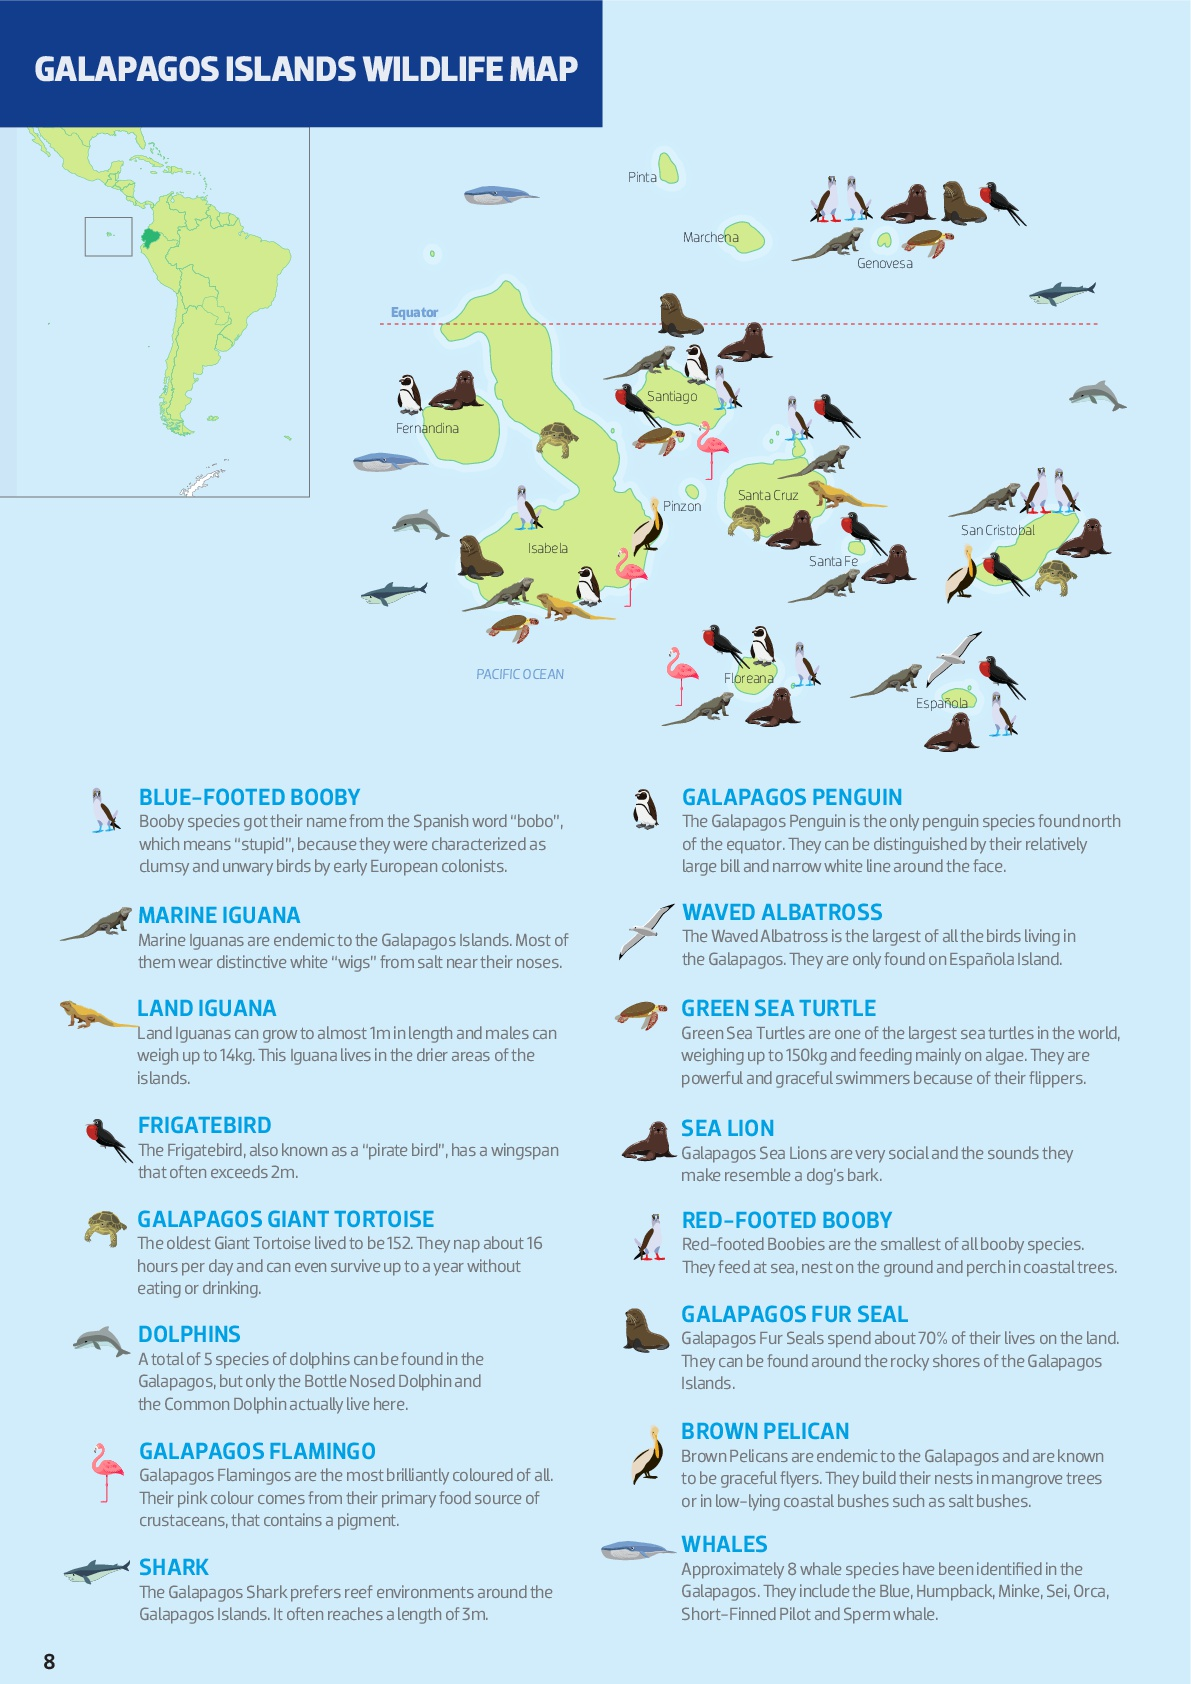 Where to find the wildlife in the Galapagos Islands